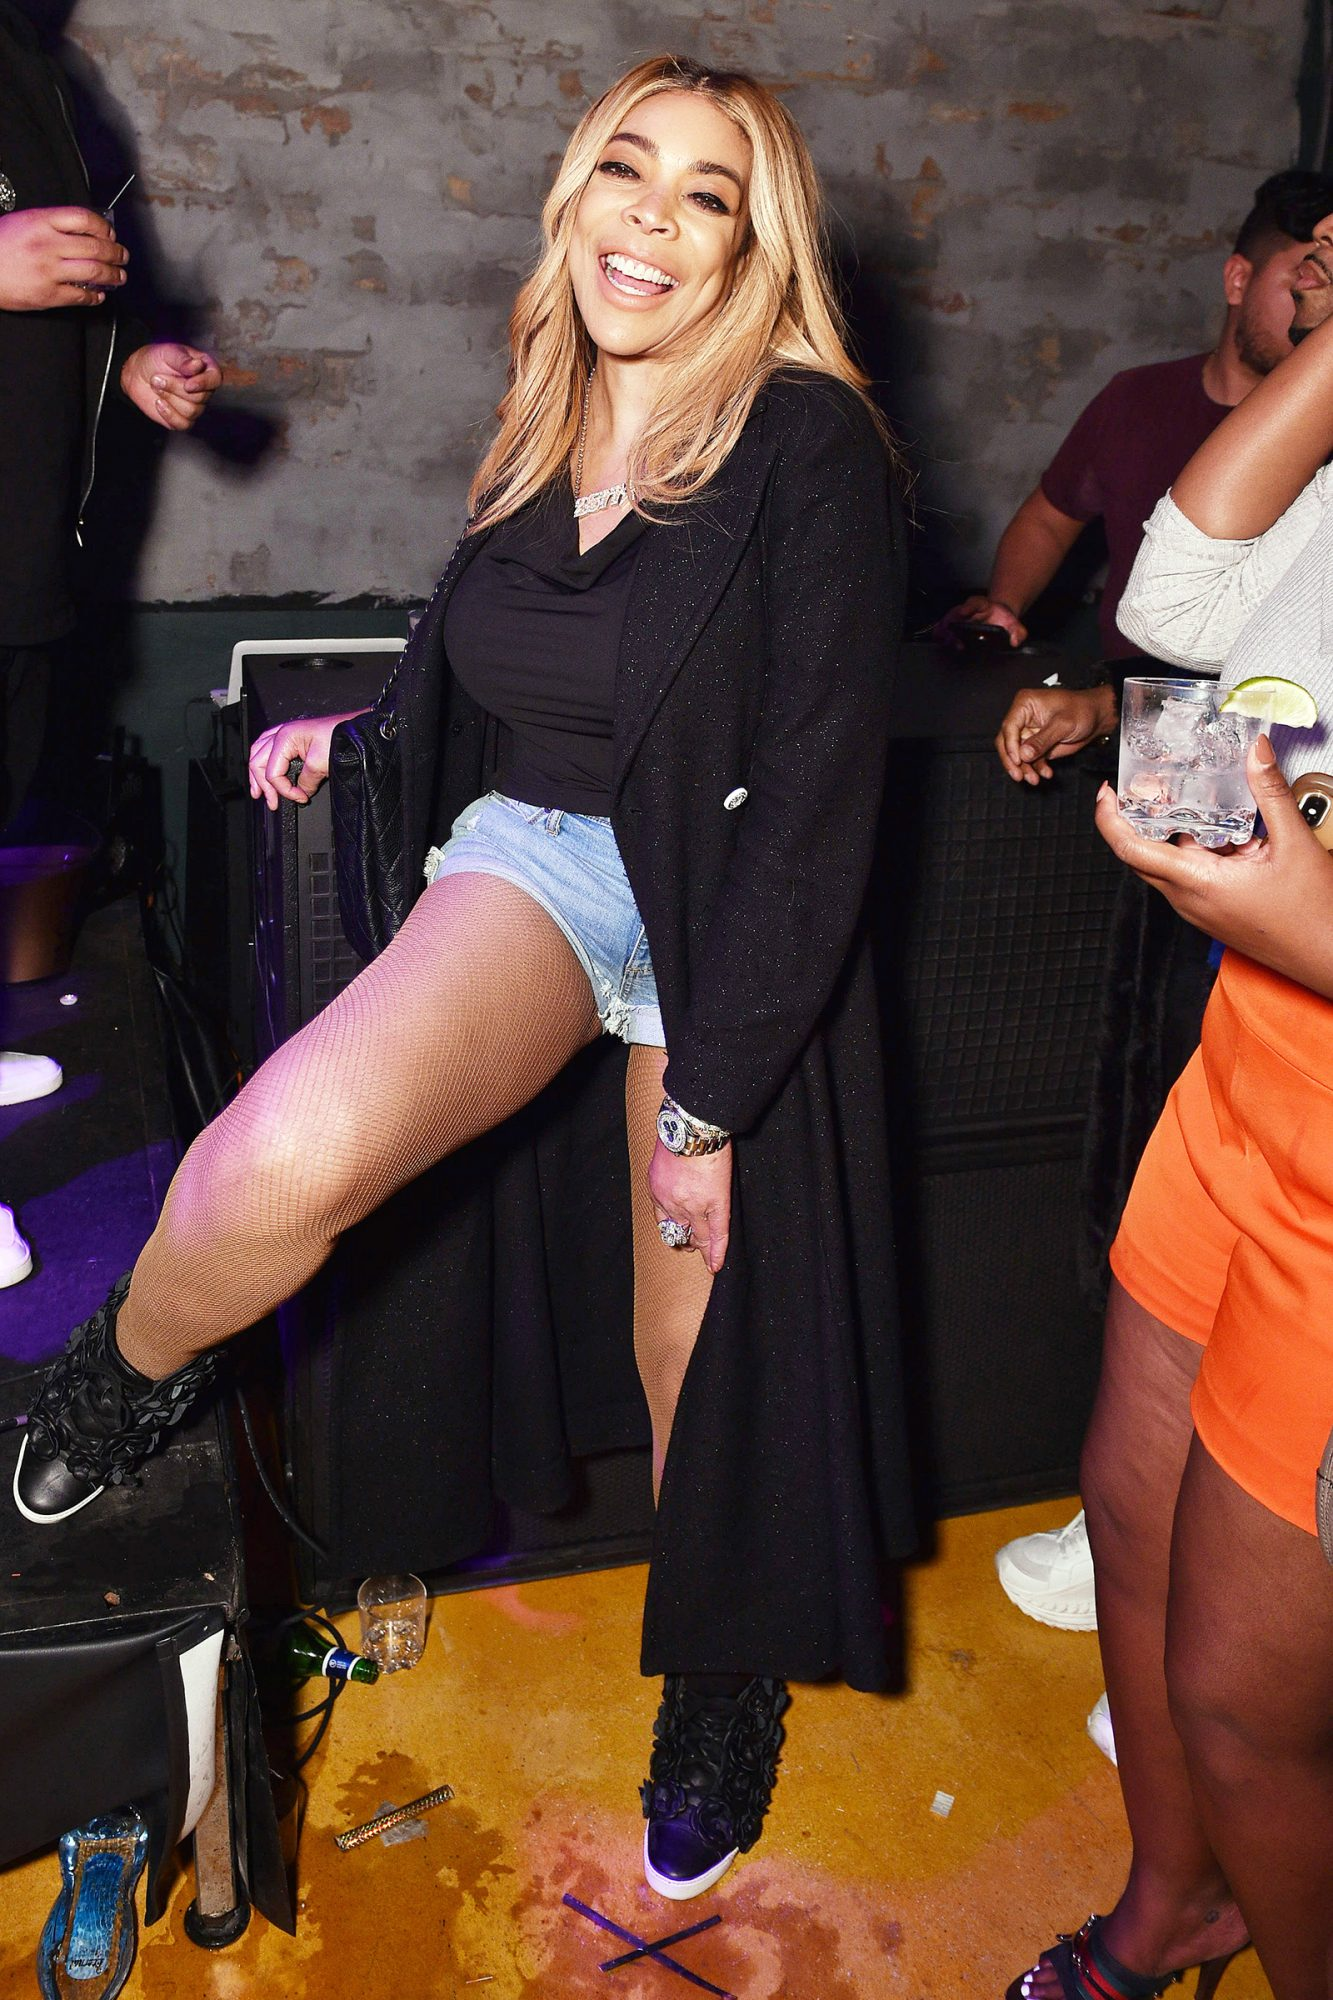 Wendy Williams attends BODEGA x DIESEL: The Unofficial Official Basel Gift Shop Party at La Otra on December 05, 2019 in Miami, Florida